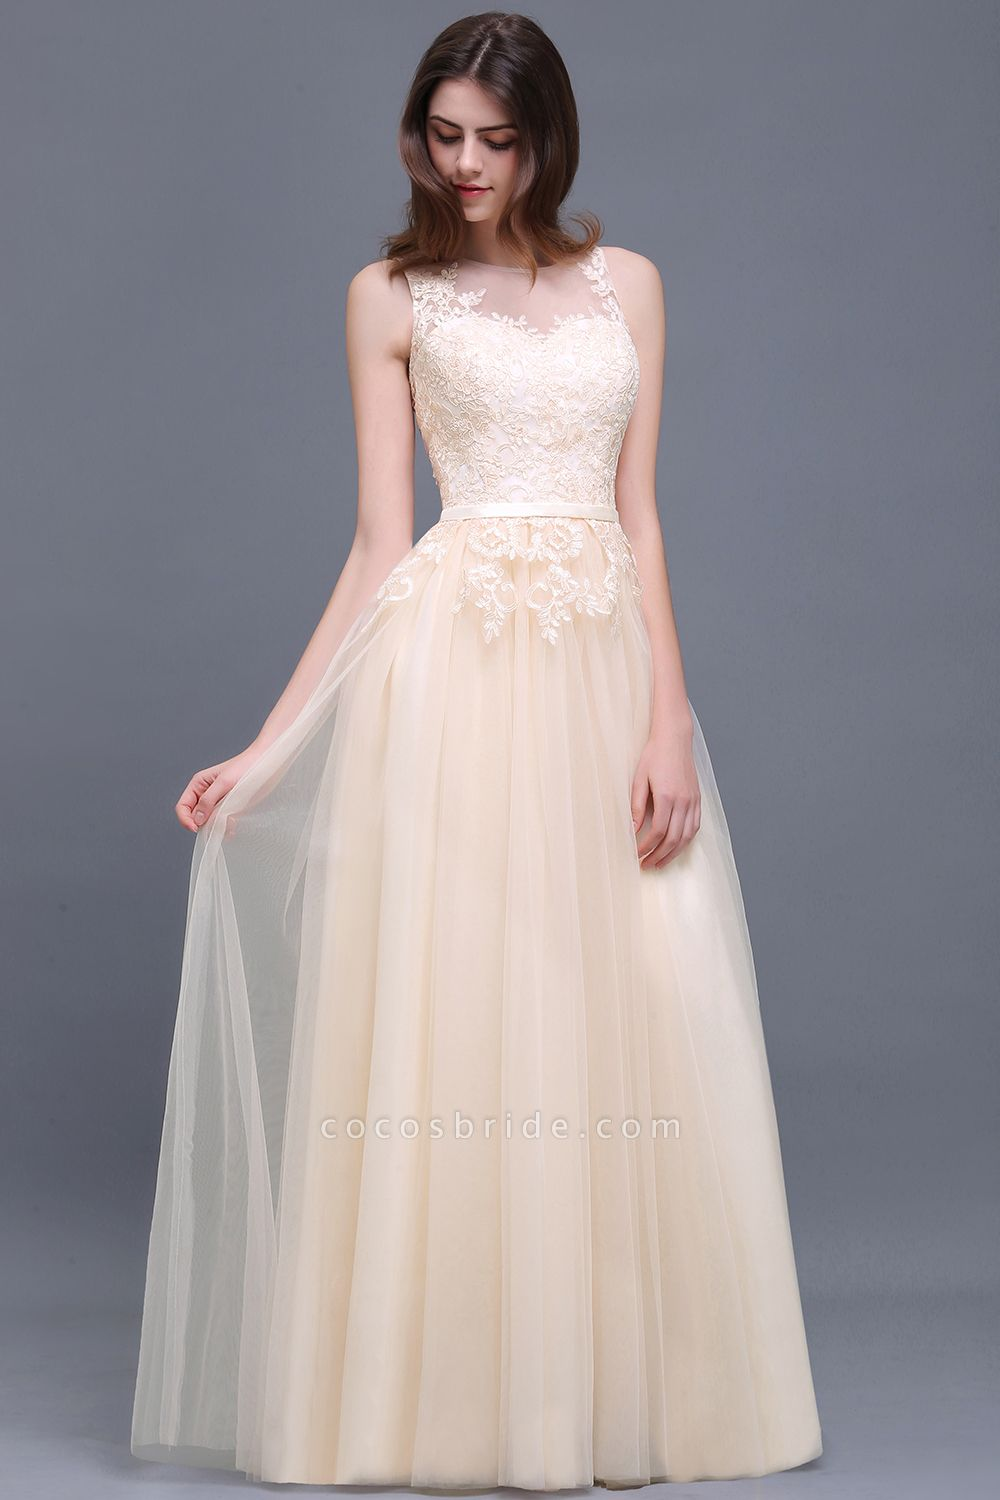 A-line Floor-Length Tulle Bridesmaid Dress With Lace